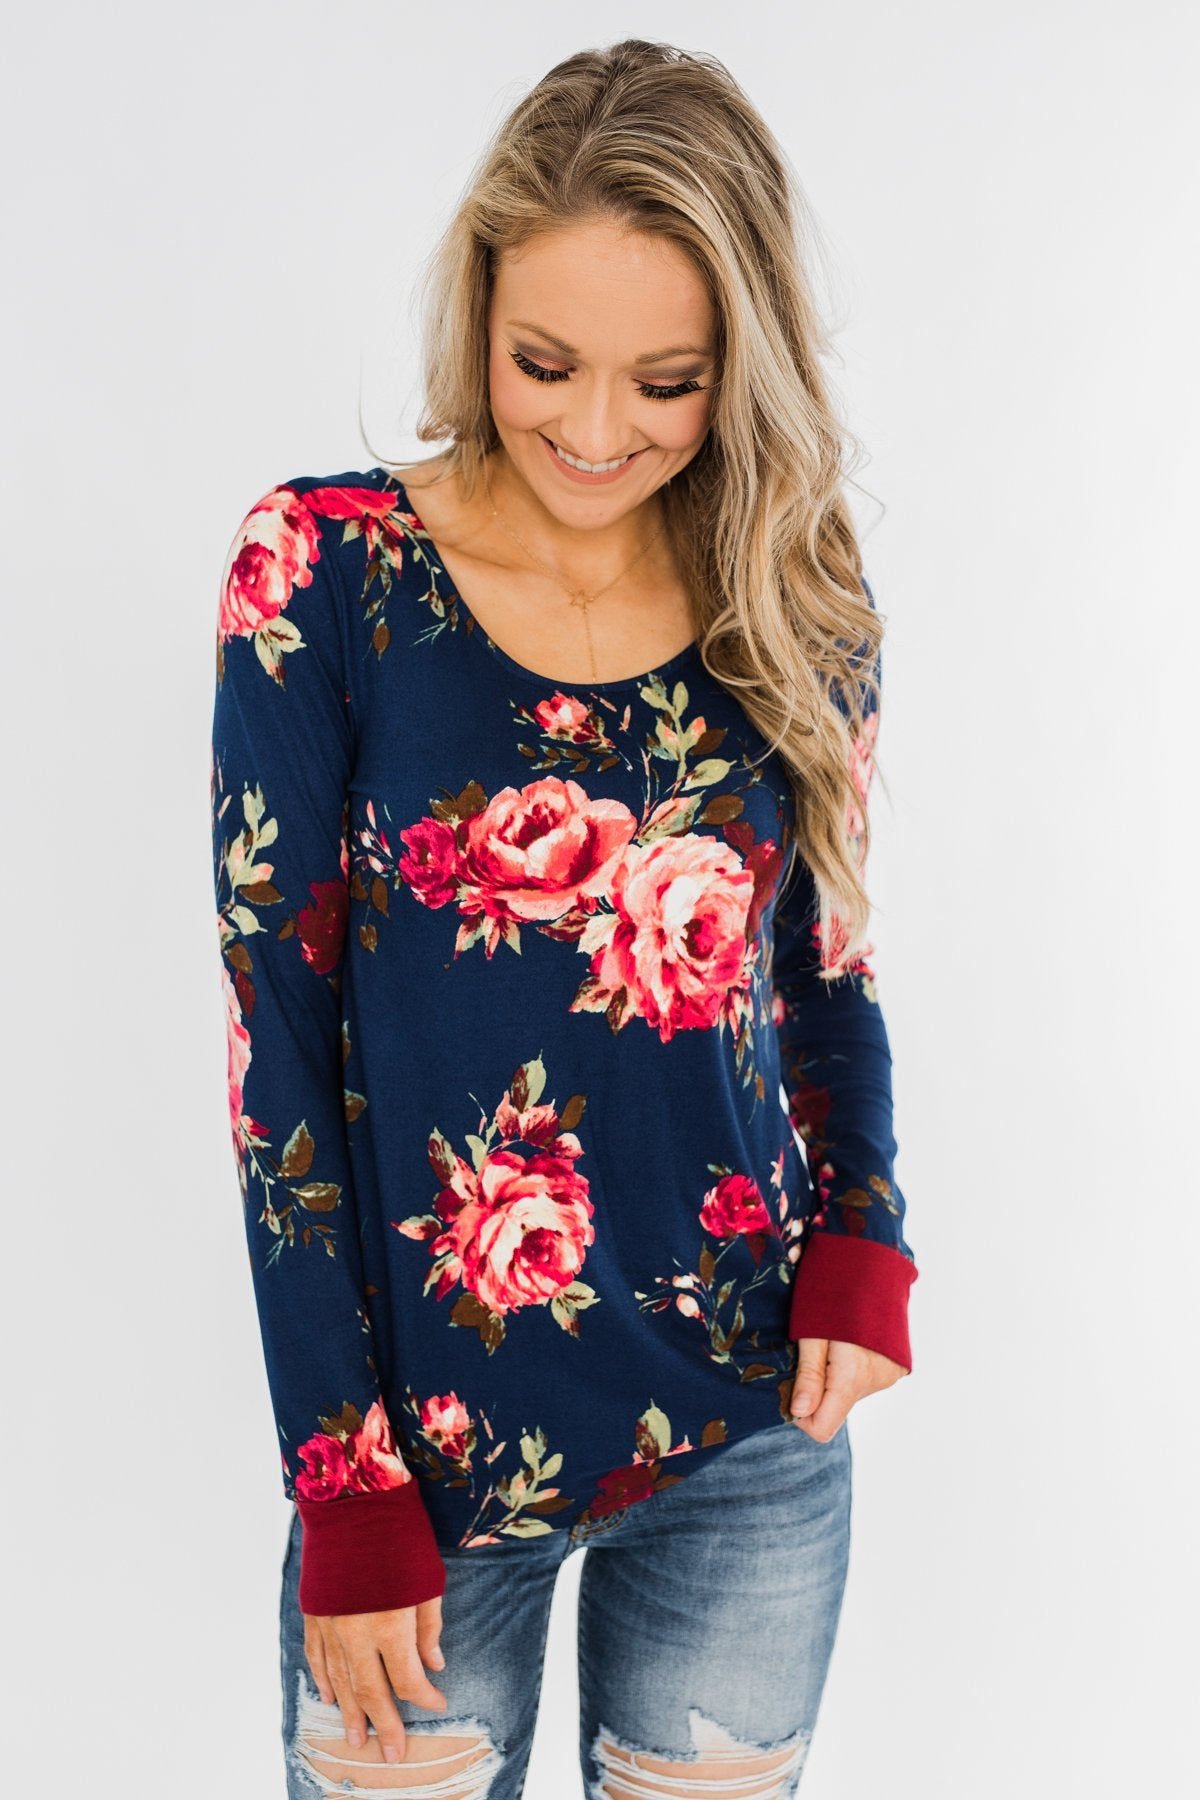 Field Of Flowers Criss Cross Top- Navy & Burgundy